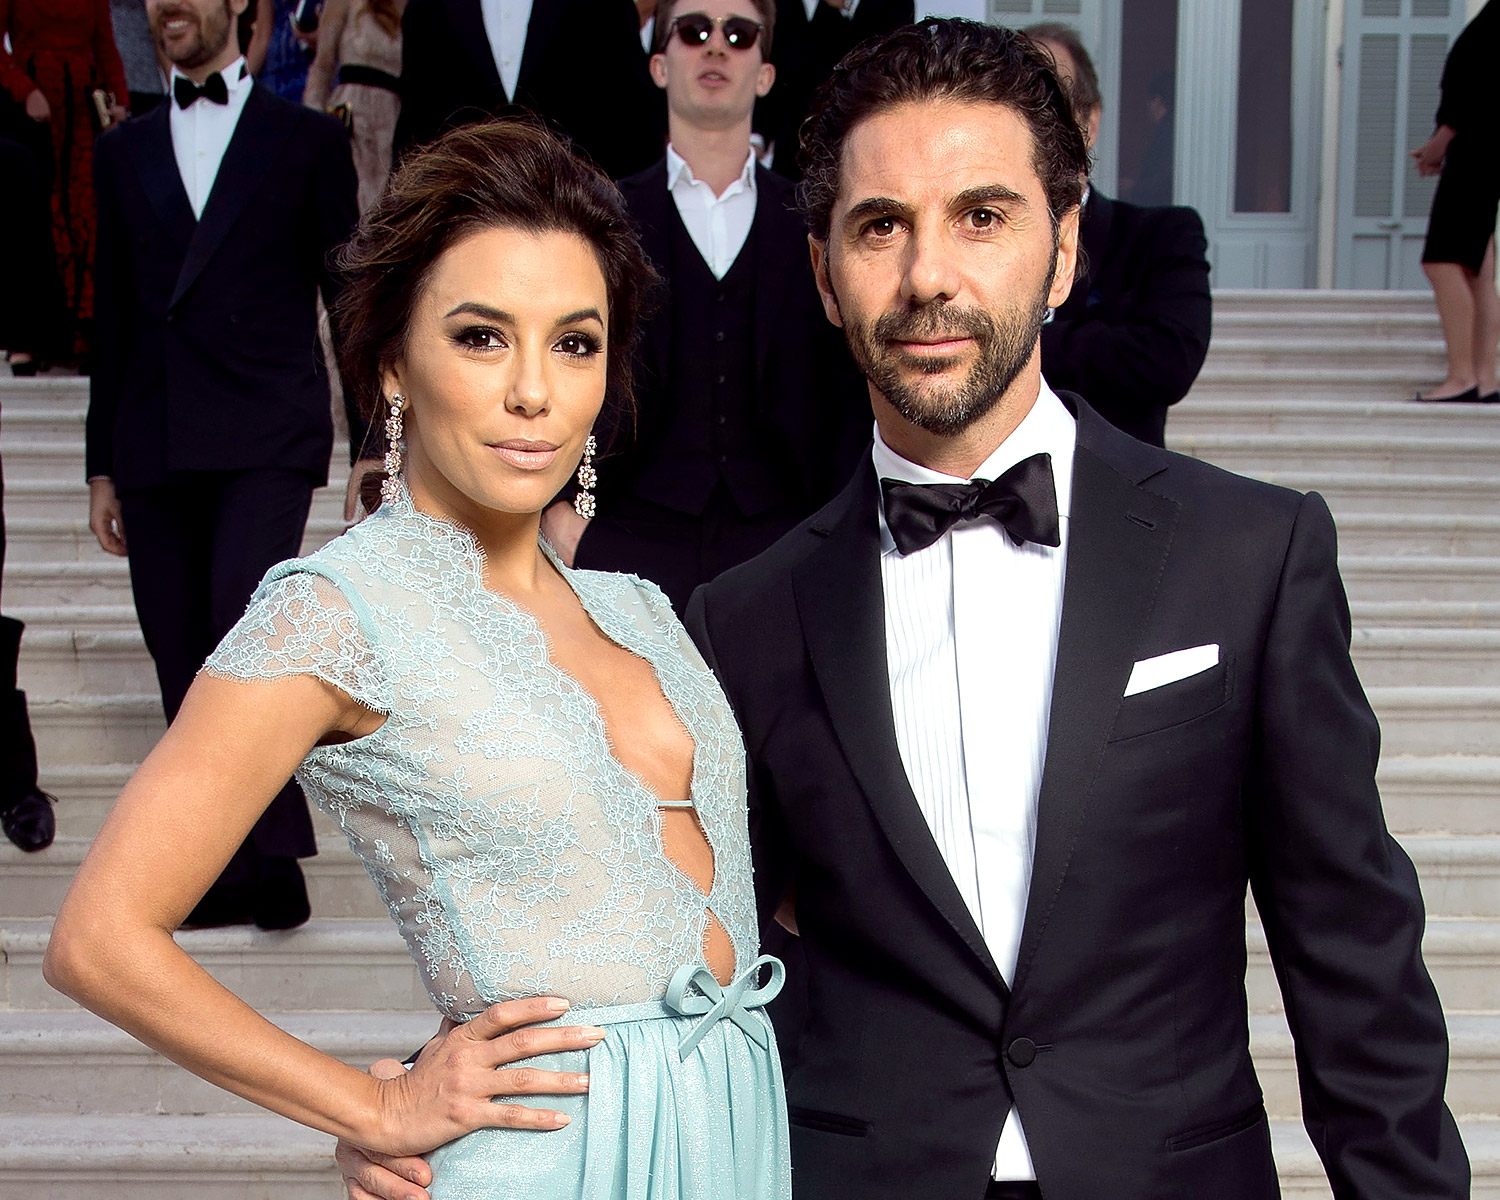 Eva Longoria and José Antonio Bastón wedding